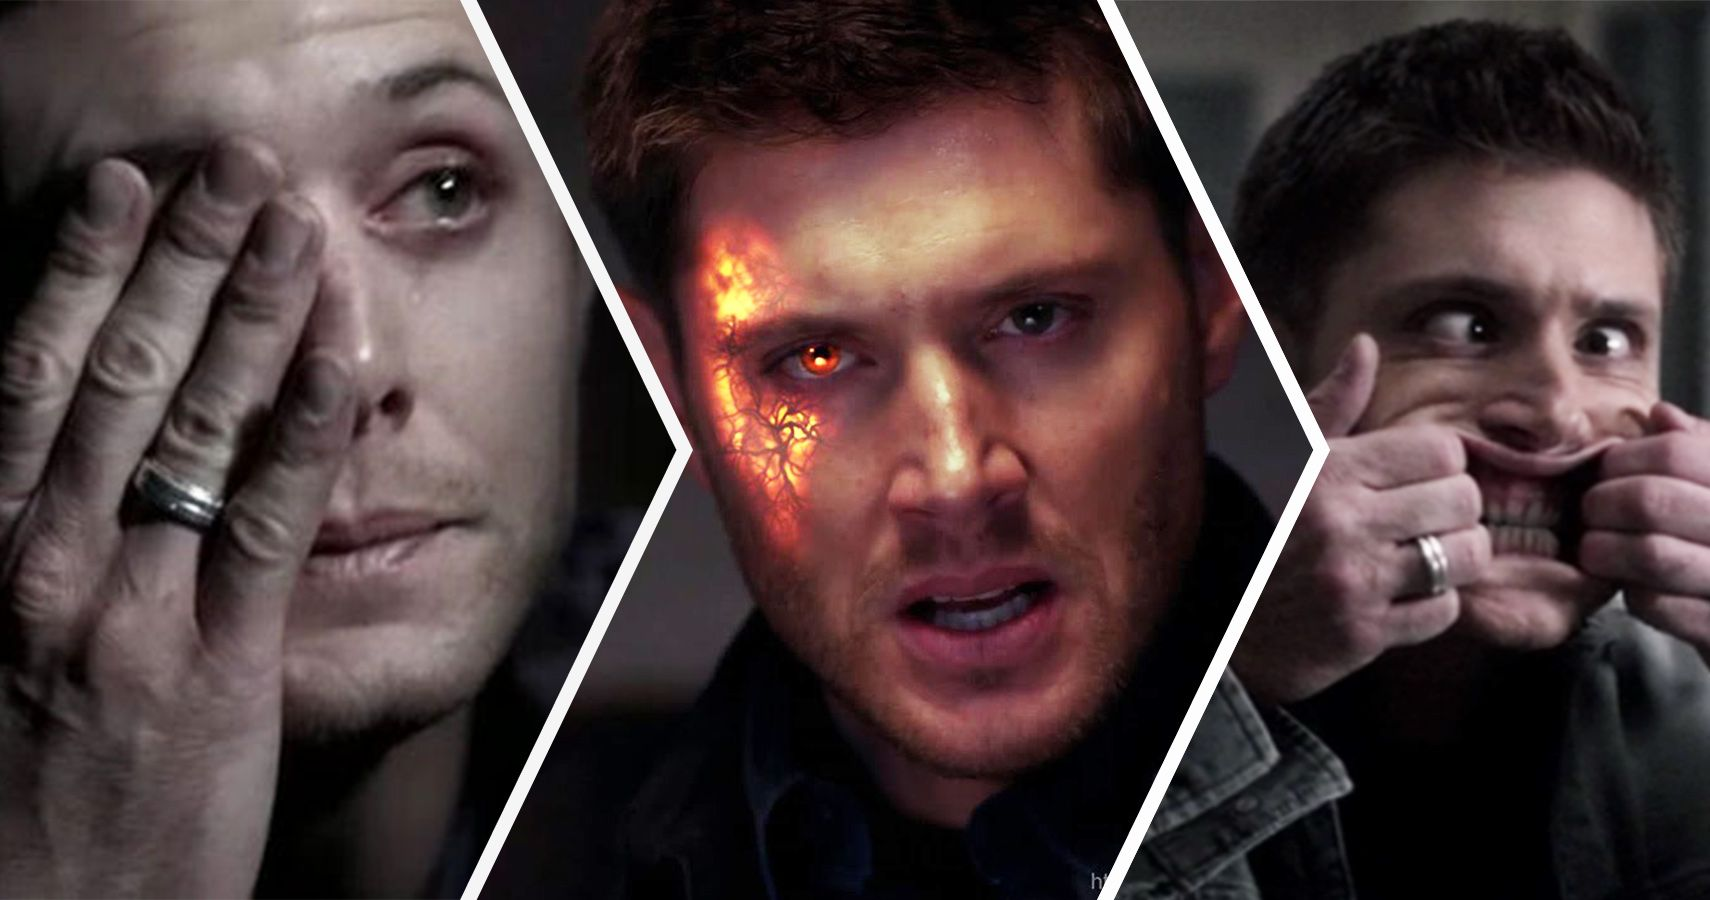 supernatural 20 things wrong with dean winchester that we all